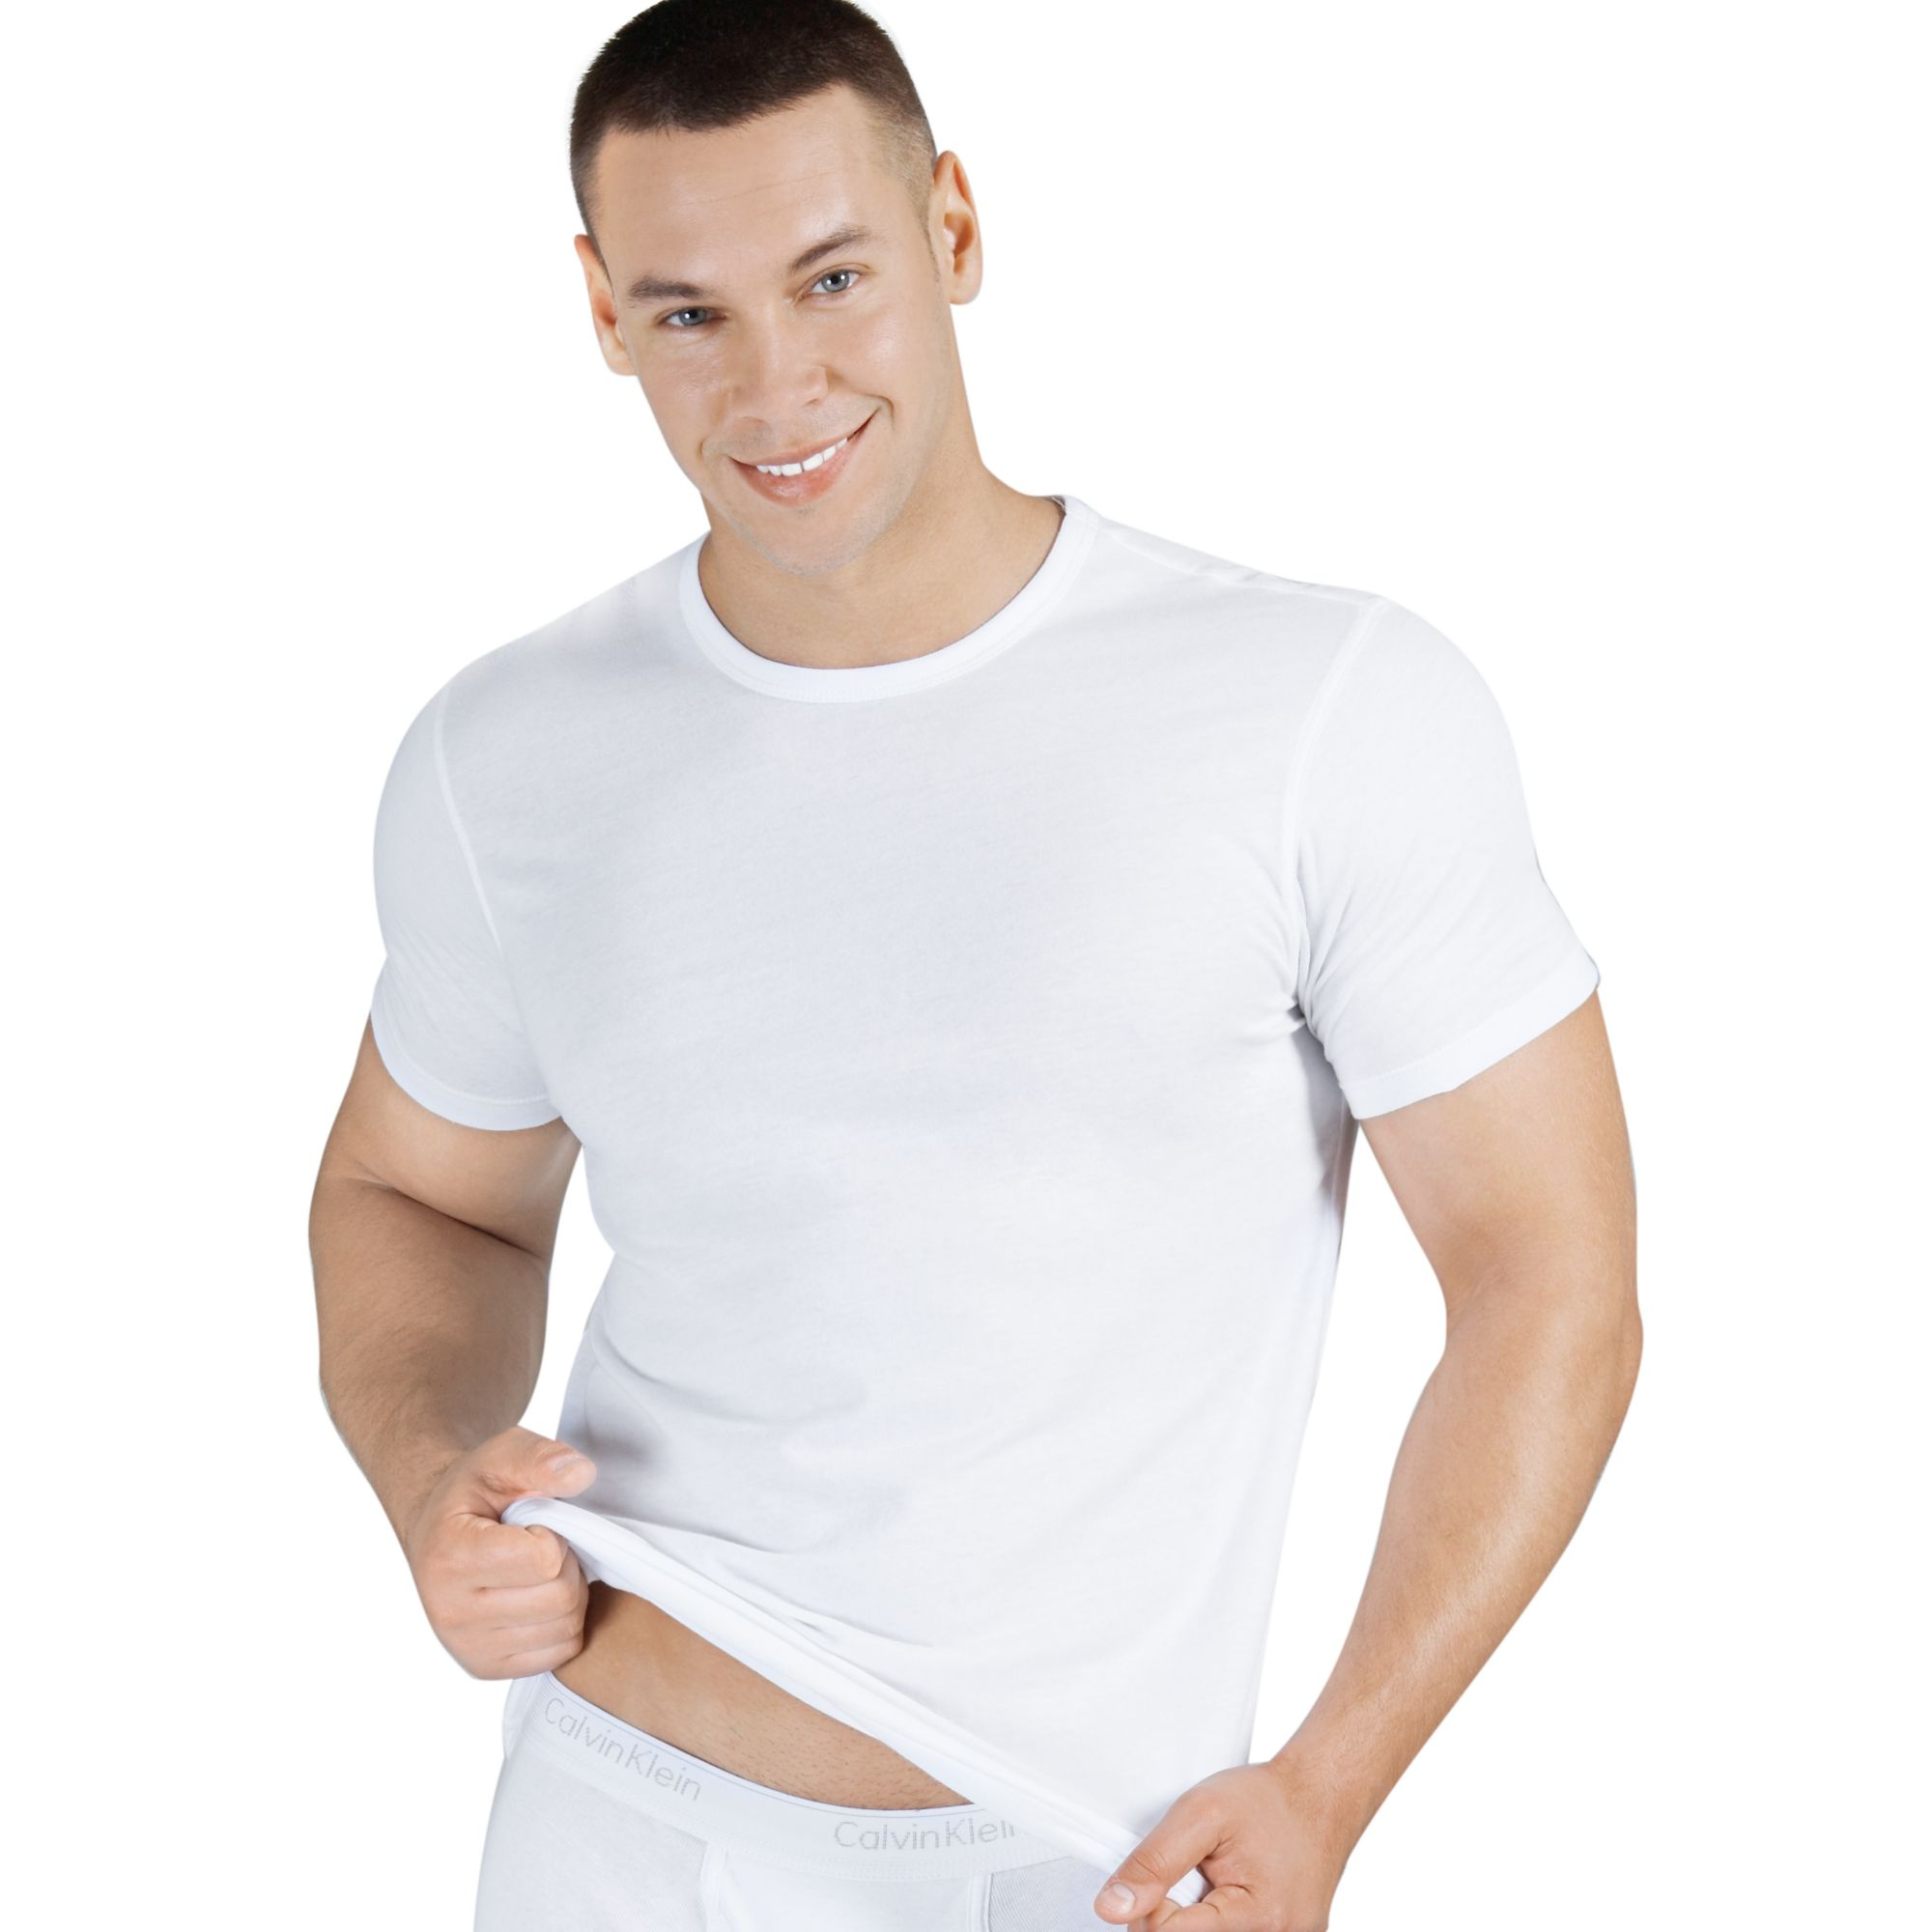 a139fe15 Calvin Klein Body Slim Fit T Shirt 3 Pack in White for Men - Lyst